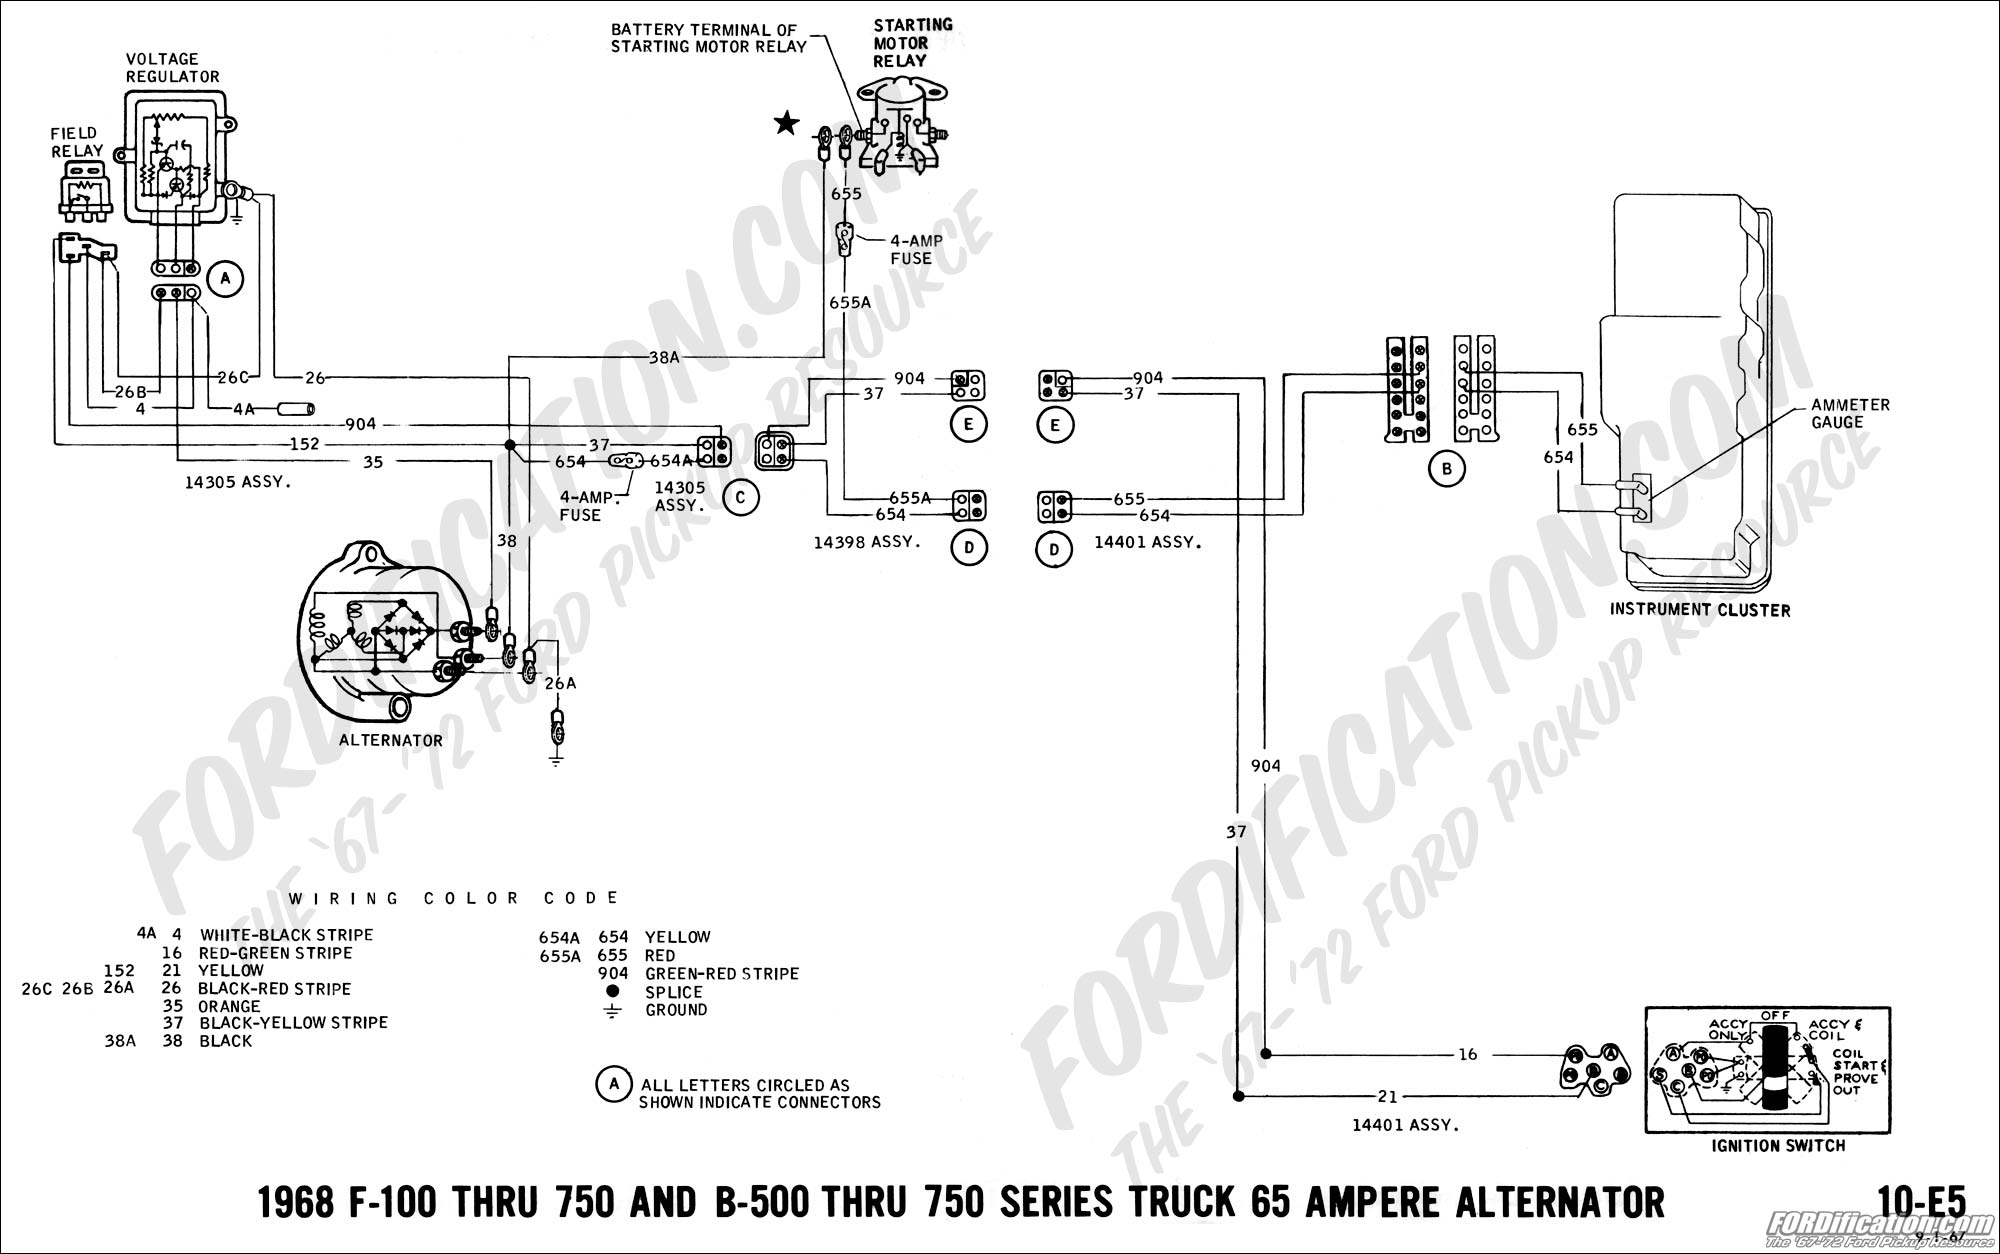 [DIAGRAM_09CH]  1999 Ford F750 Fuse Diagram | Wiring Library | Free Download Gsr Series Wiring Diagram |  | 55.hogerteknologerna.org